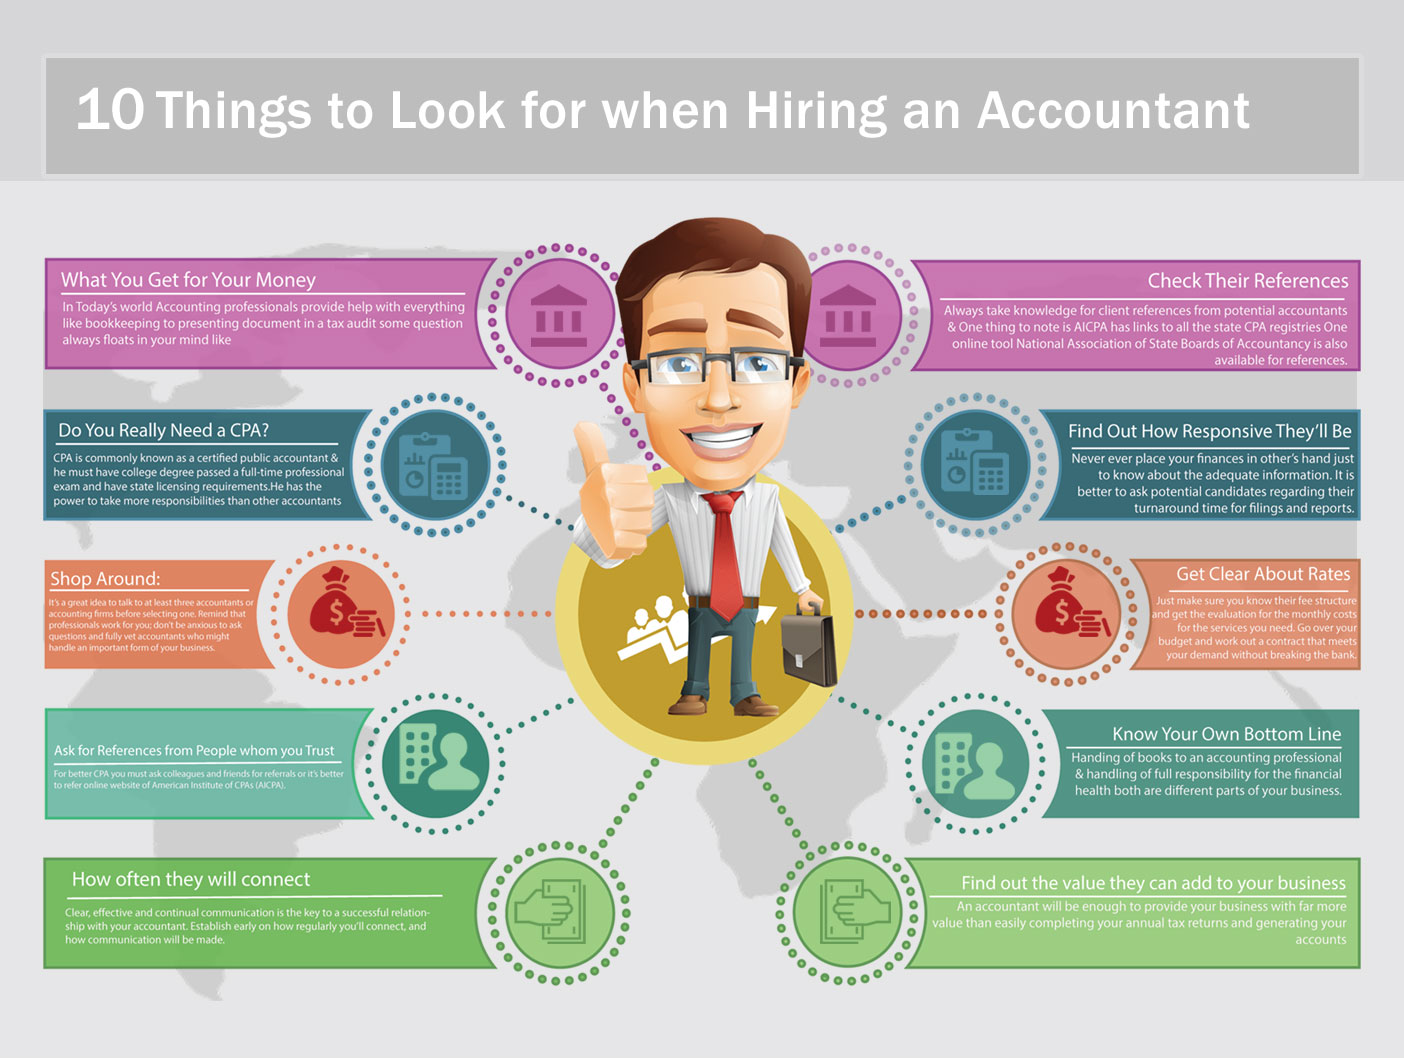 10 Things to Look for when Hiring an22222 Accountant